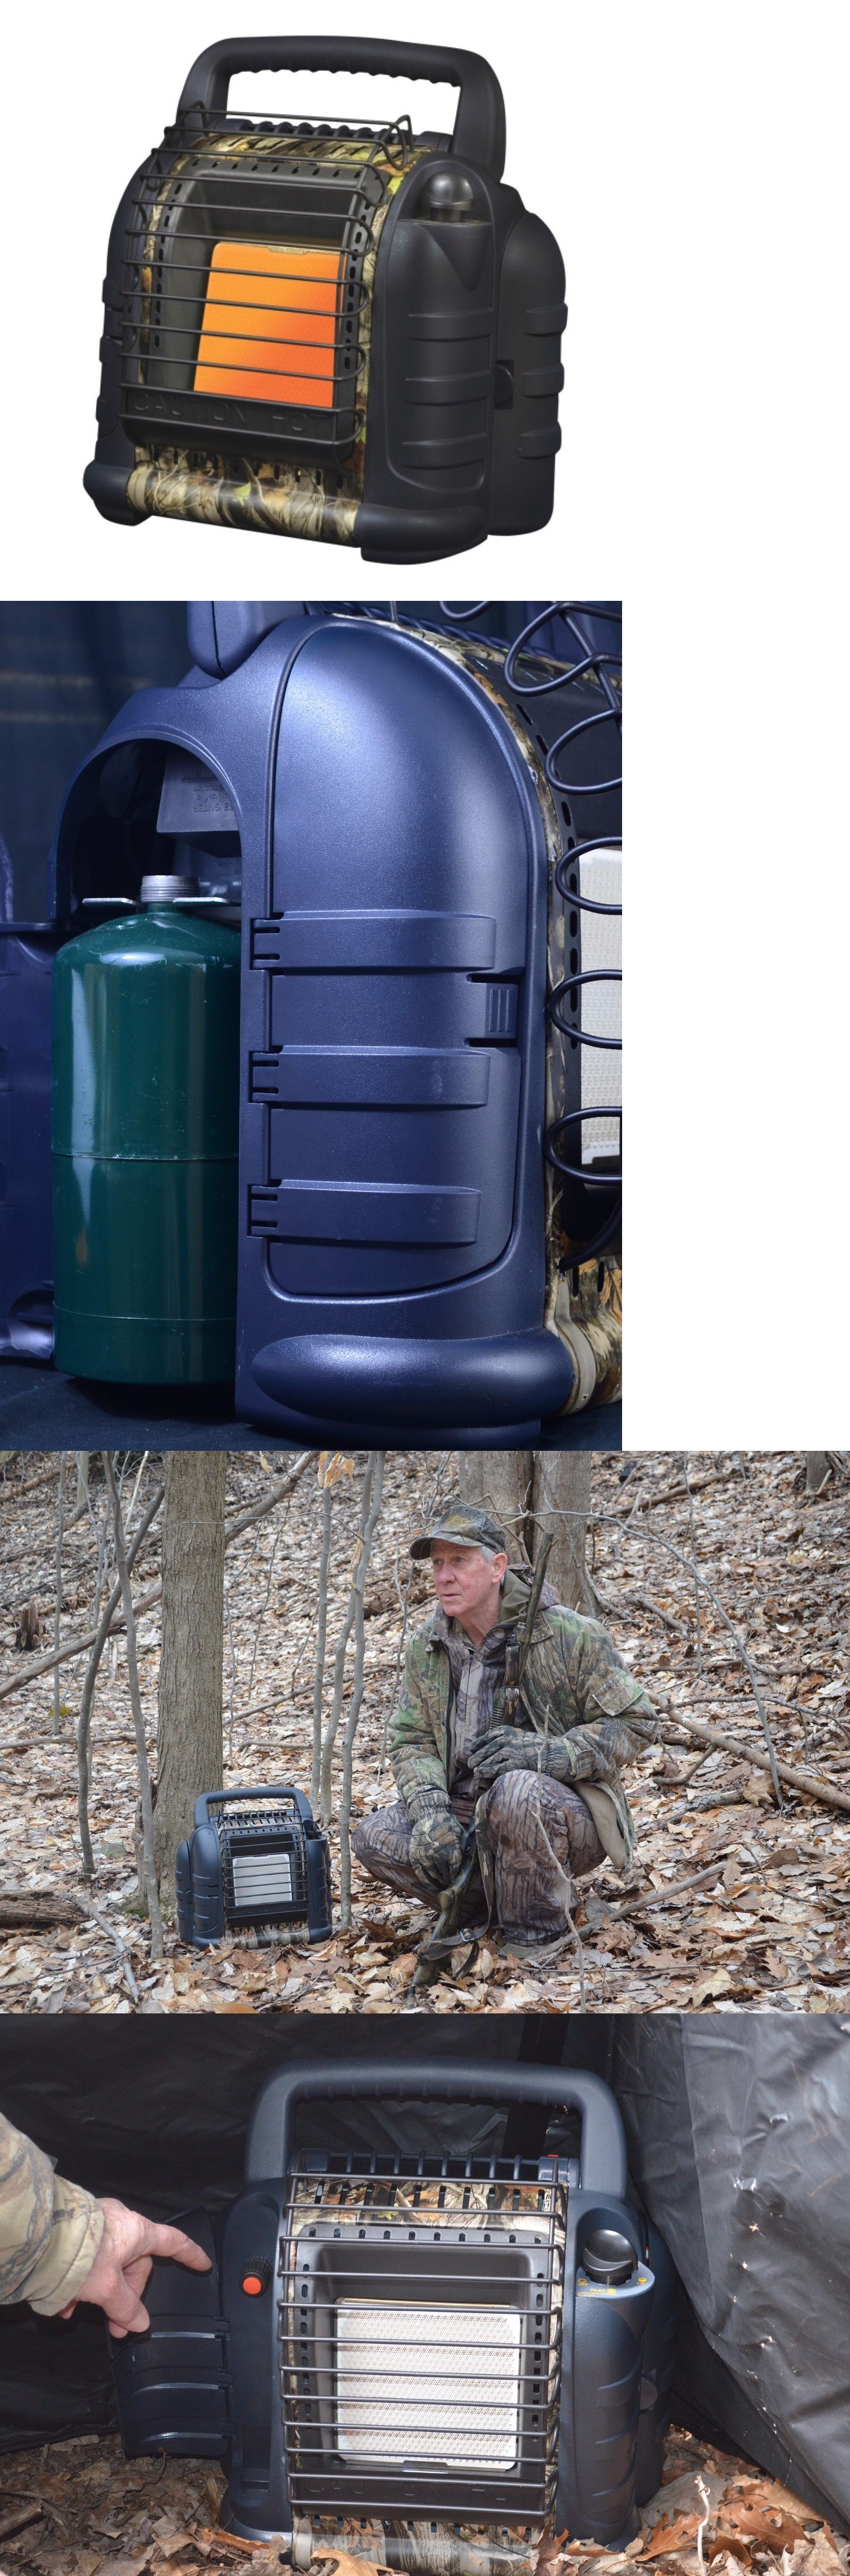 generators and heaters 16039 mr heater hunting buddy portable